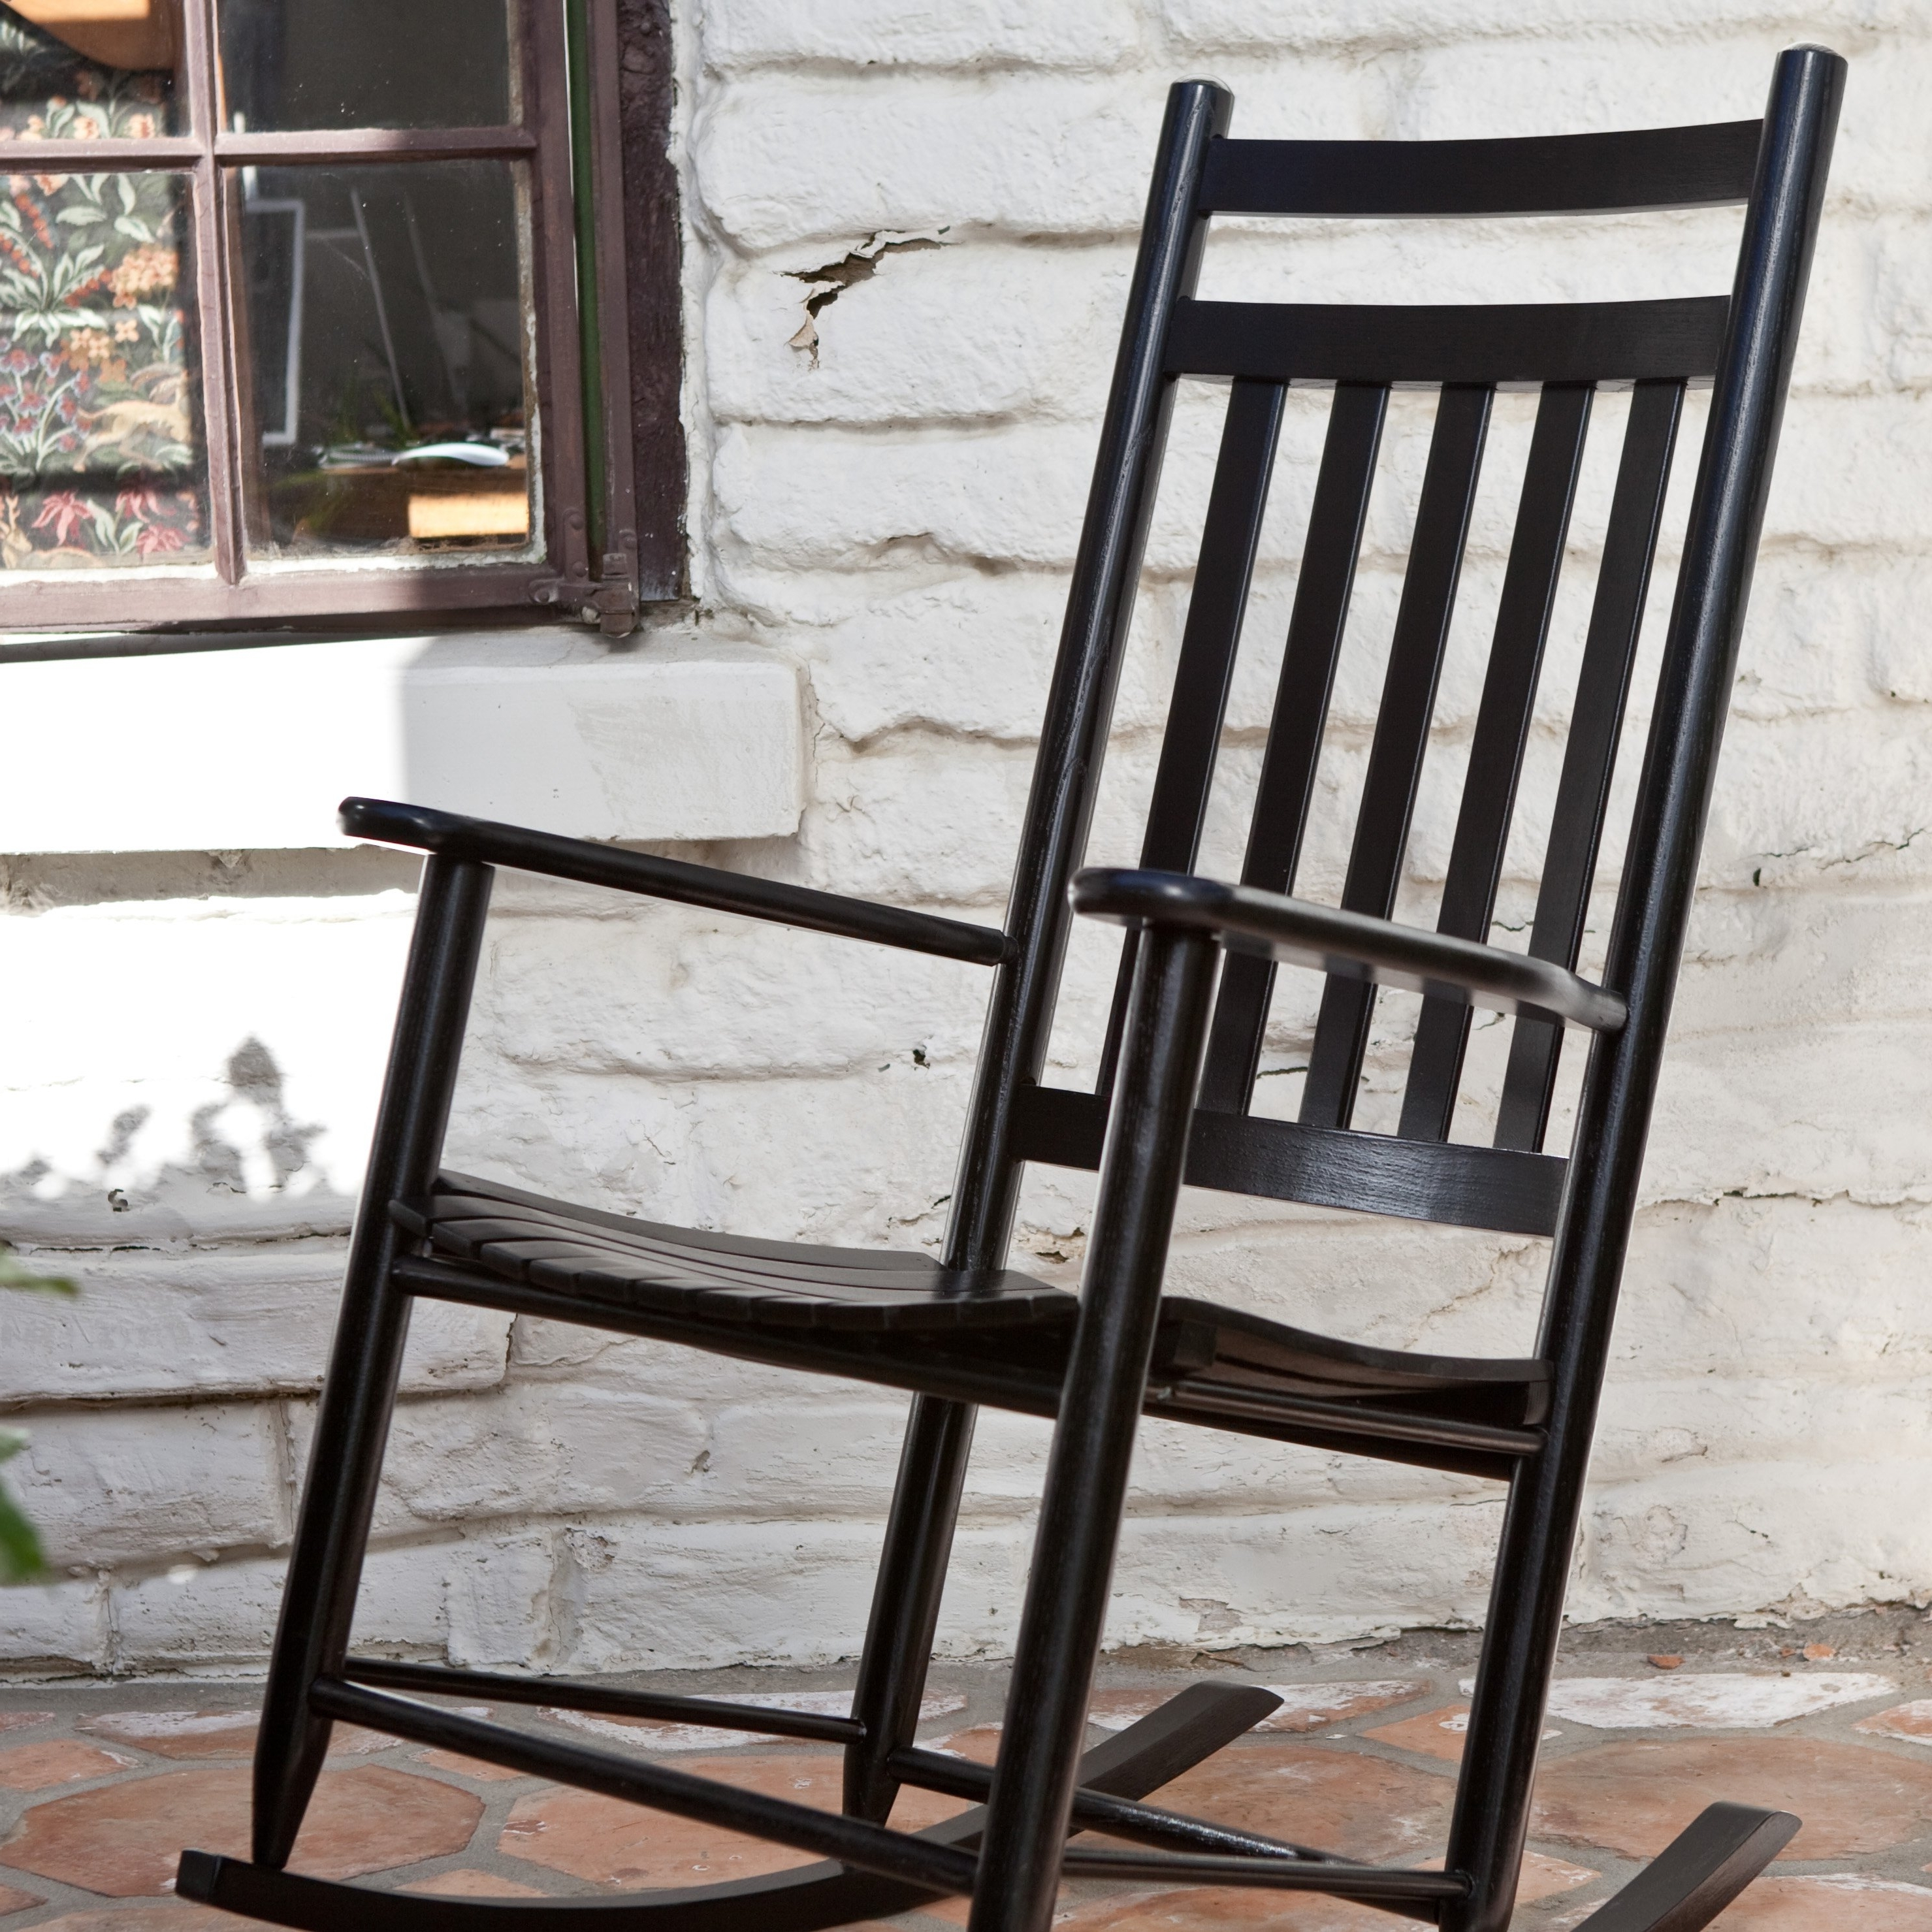 Trendy Black Rocking Chairs Pertaining To Black Rocking Chairs Dixie Seating Indoor Or Outdoor — The Home (View 14 of 15)